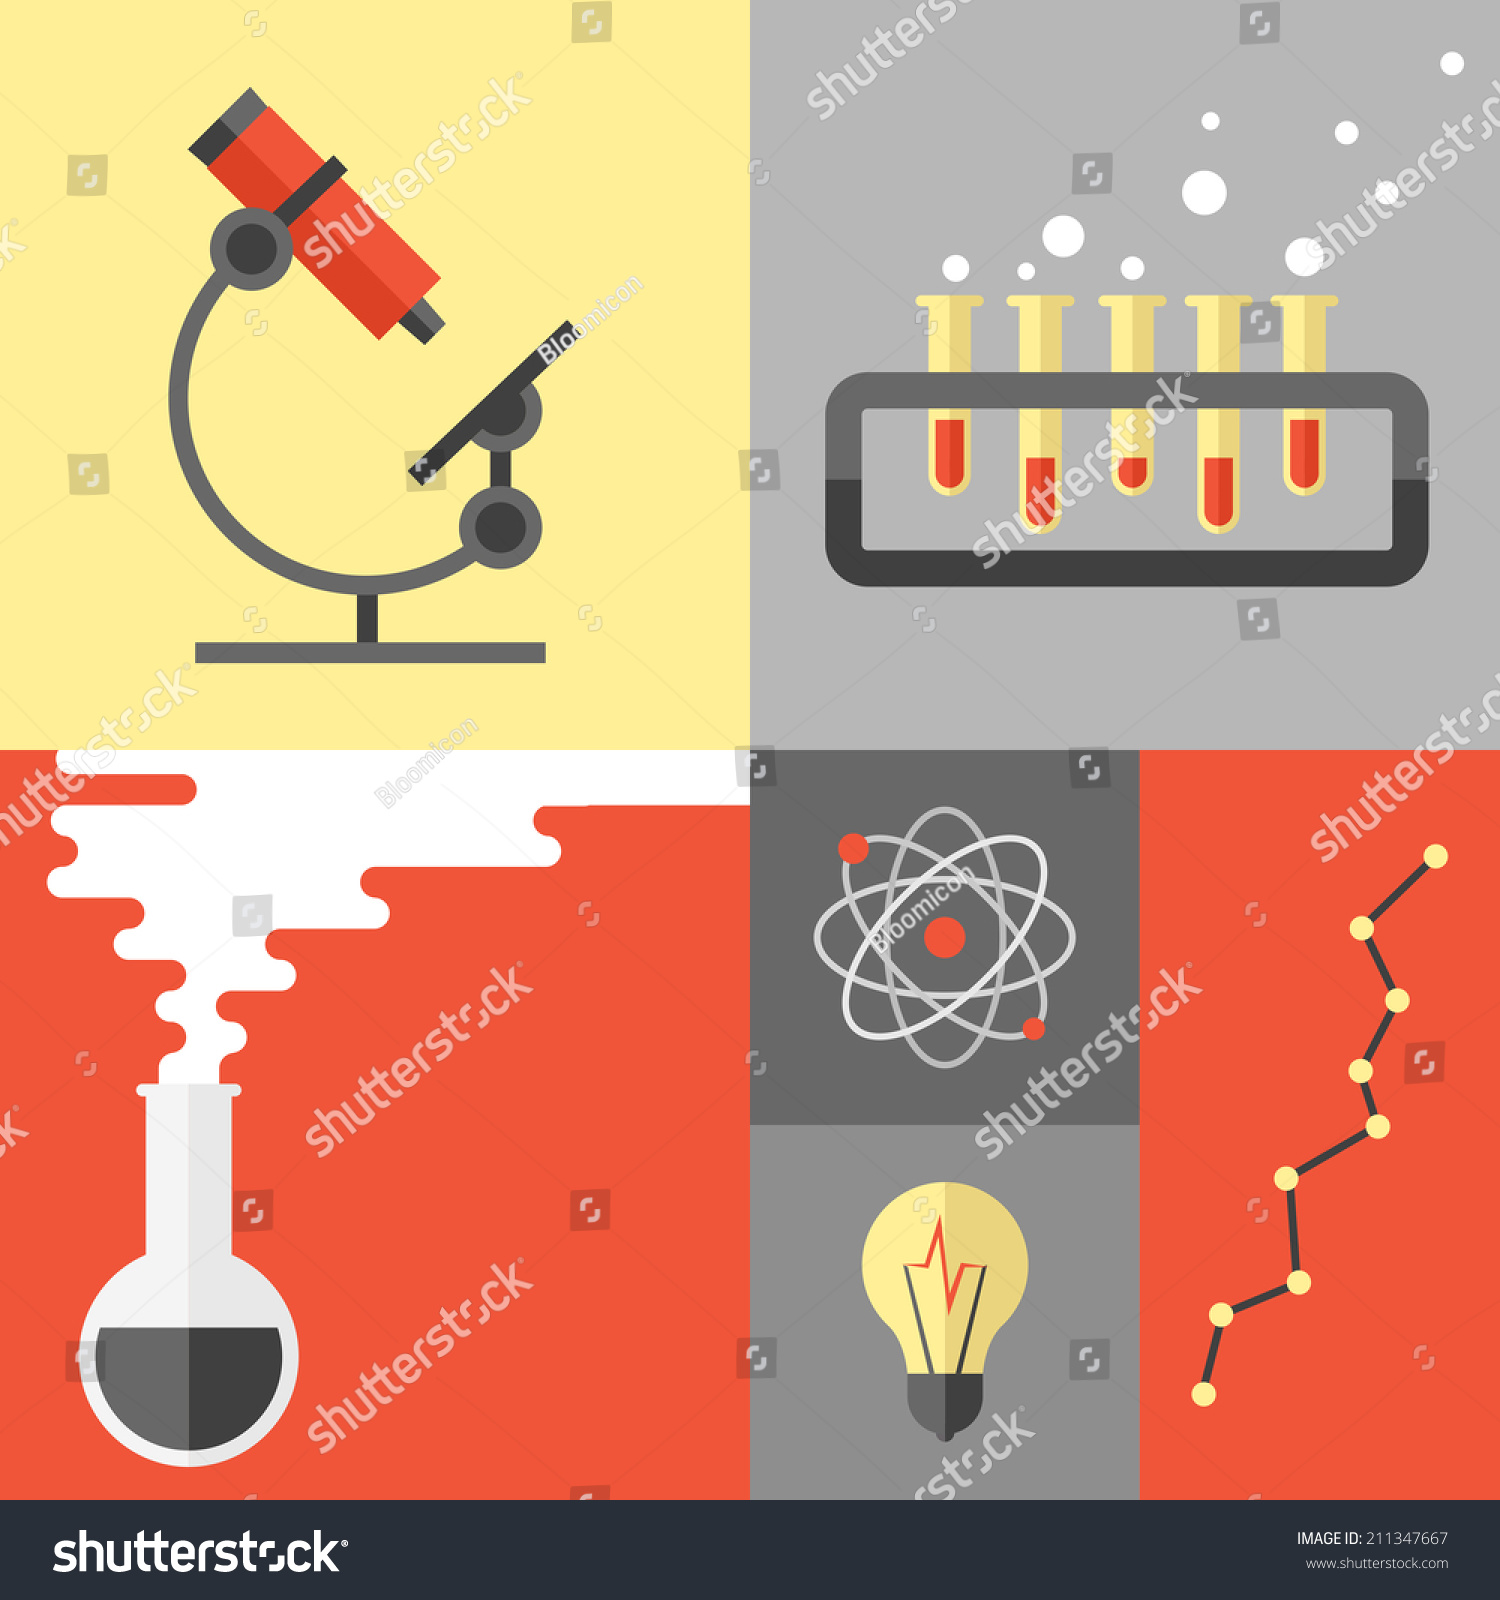 Poster design tools - Flat Design Poster Of Science Experiment And Research Analysis Chemistry Equipment And Tools Atom